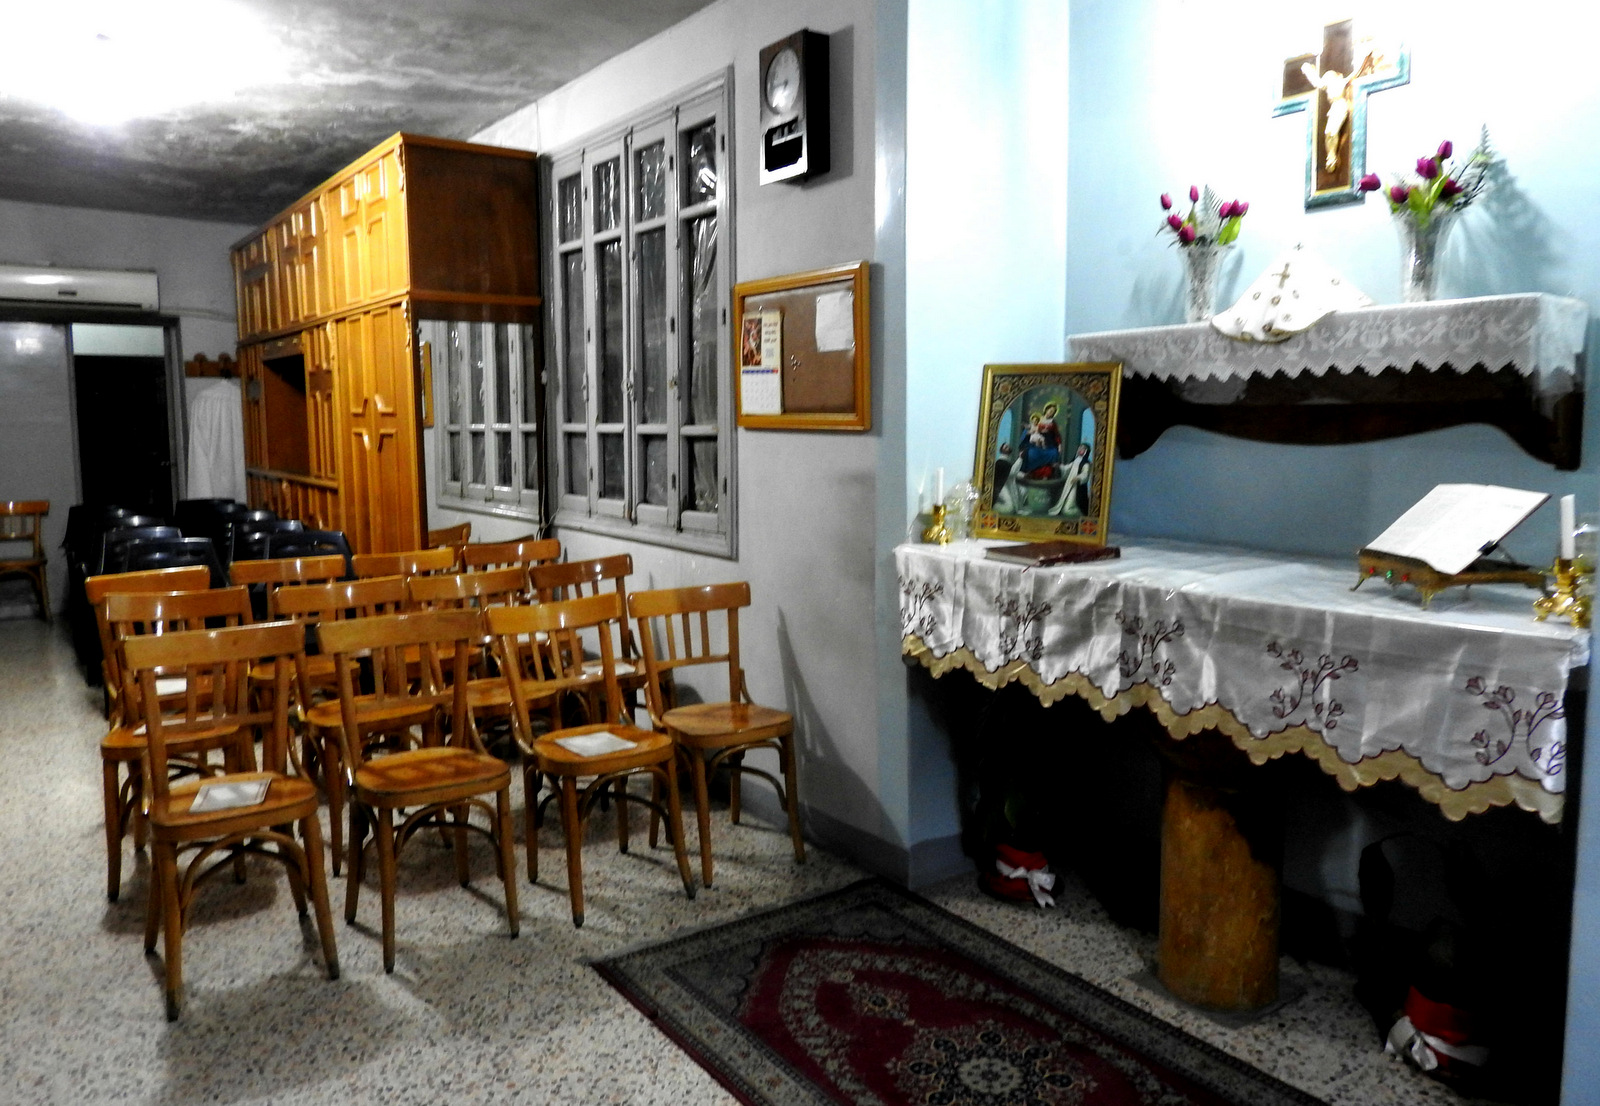 According to a representative of the Syrian Catholic Church of Aleppo, around one-third of the congregation's 1,350 families have fled to other areas of Syria or even gone abroad, primarily seeking security and distance from the mortars and rockets of terrorist factions. Congregation members stopped worshiping in the church chapel two years ago after repeated instances of shelling. They now gather in a small interior corridor where they feel somewhat safer. Nov. 2, 2016. (Photo: Eva Bartlett)